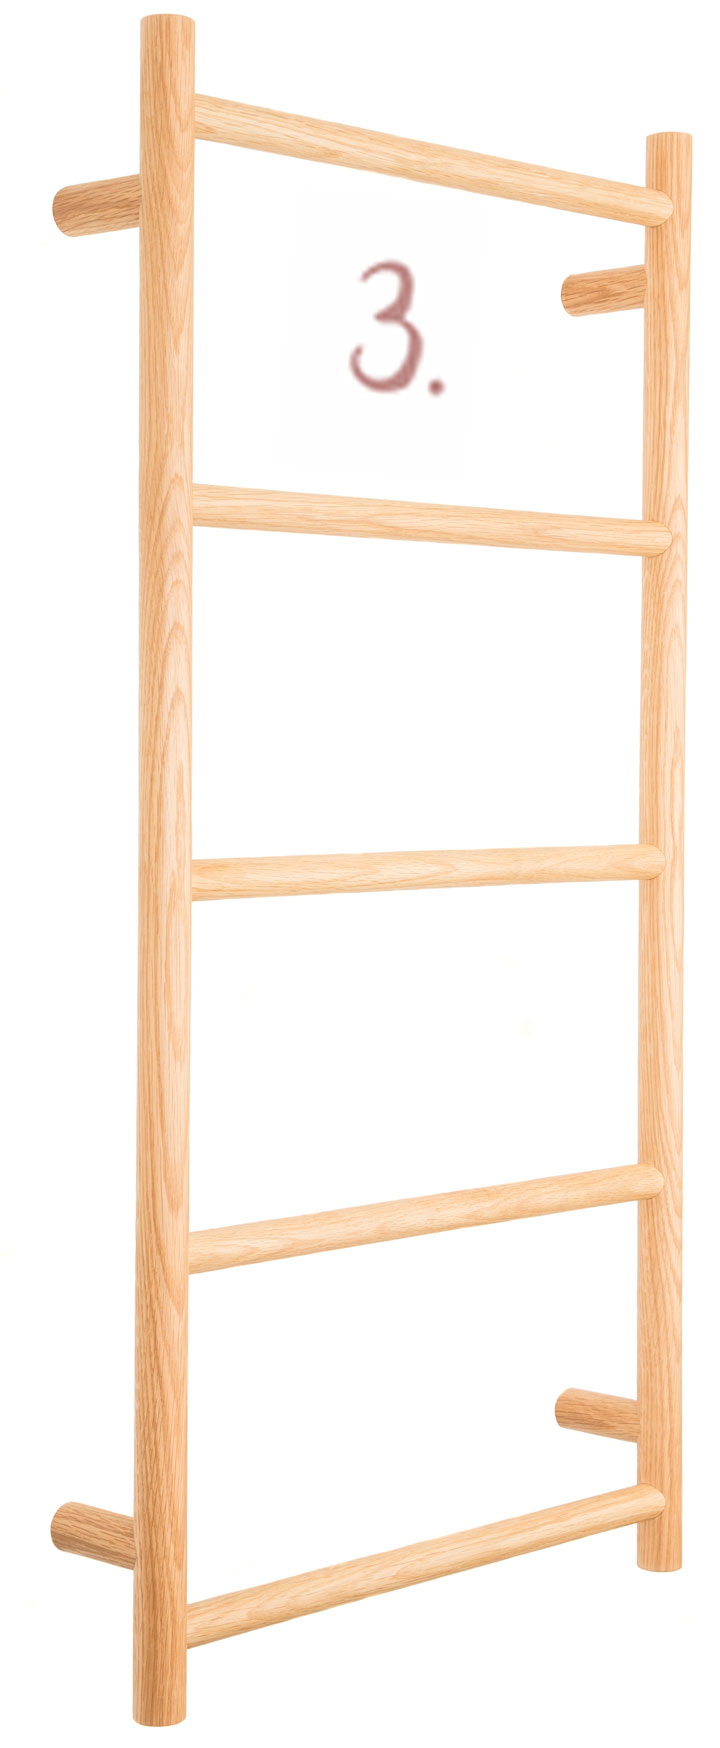 5-Rung Towel Rack in American Oak, RRP from $399, www.thedesignhunter. com.au